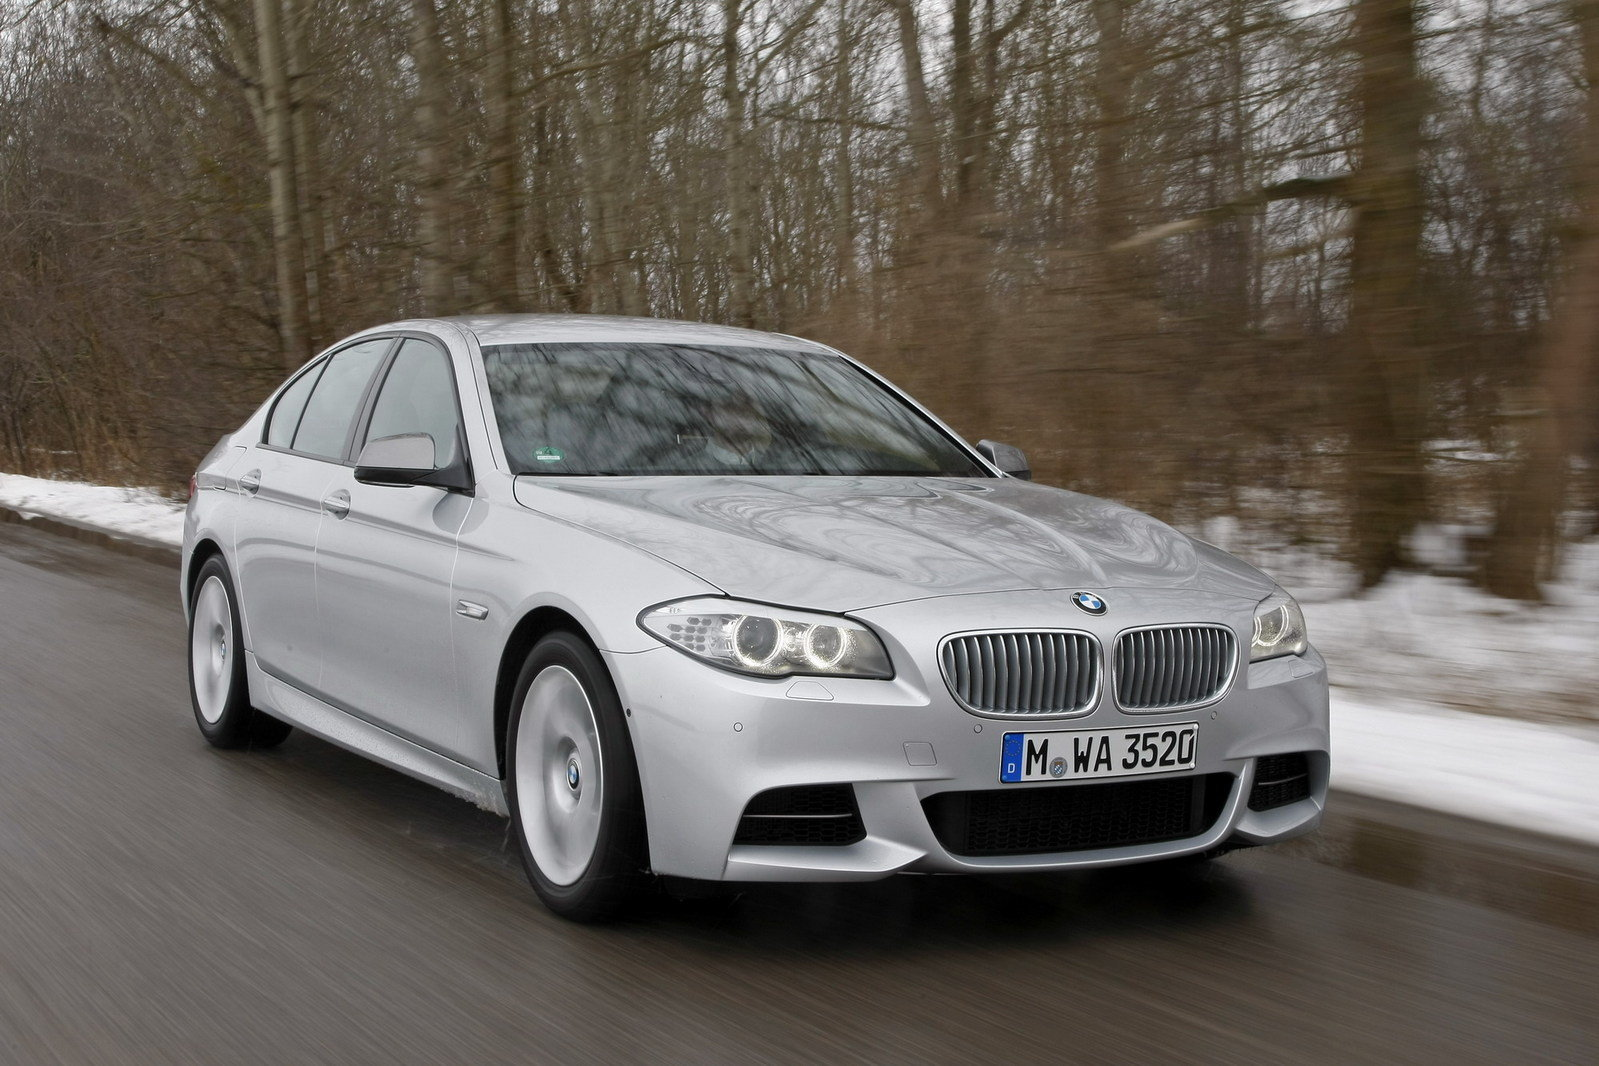 2012 Bmw M550d Xdrive Review Top Speed